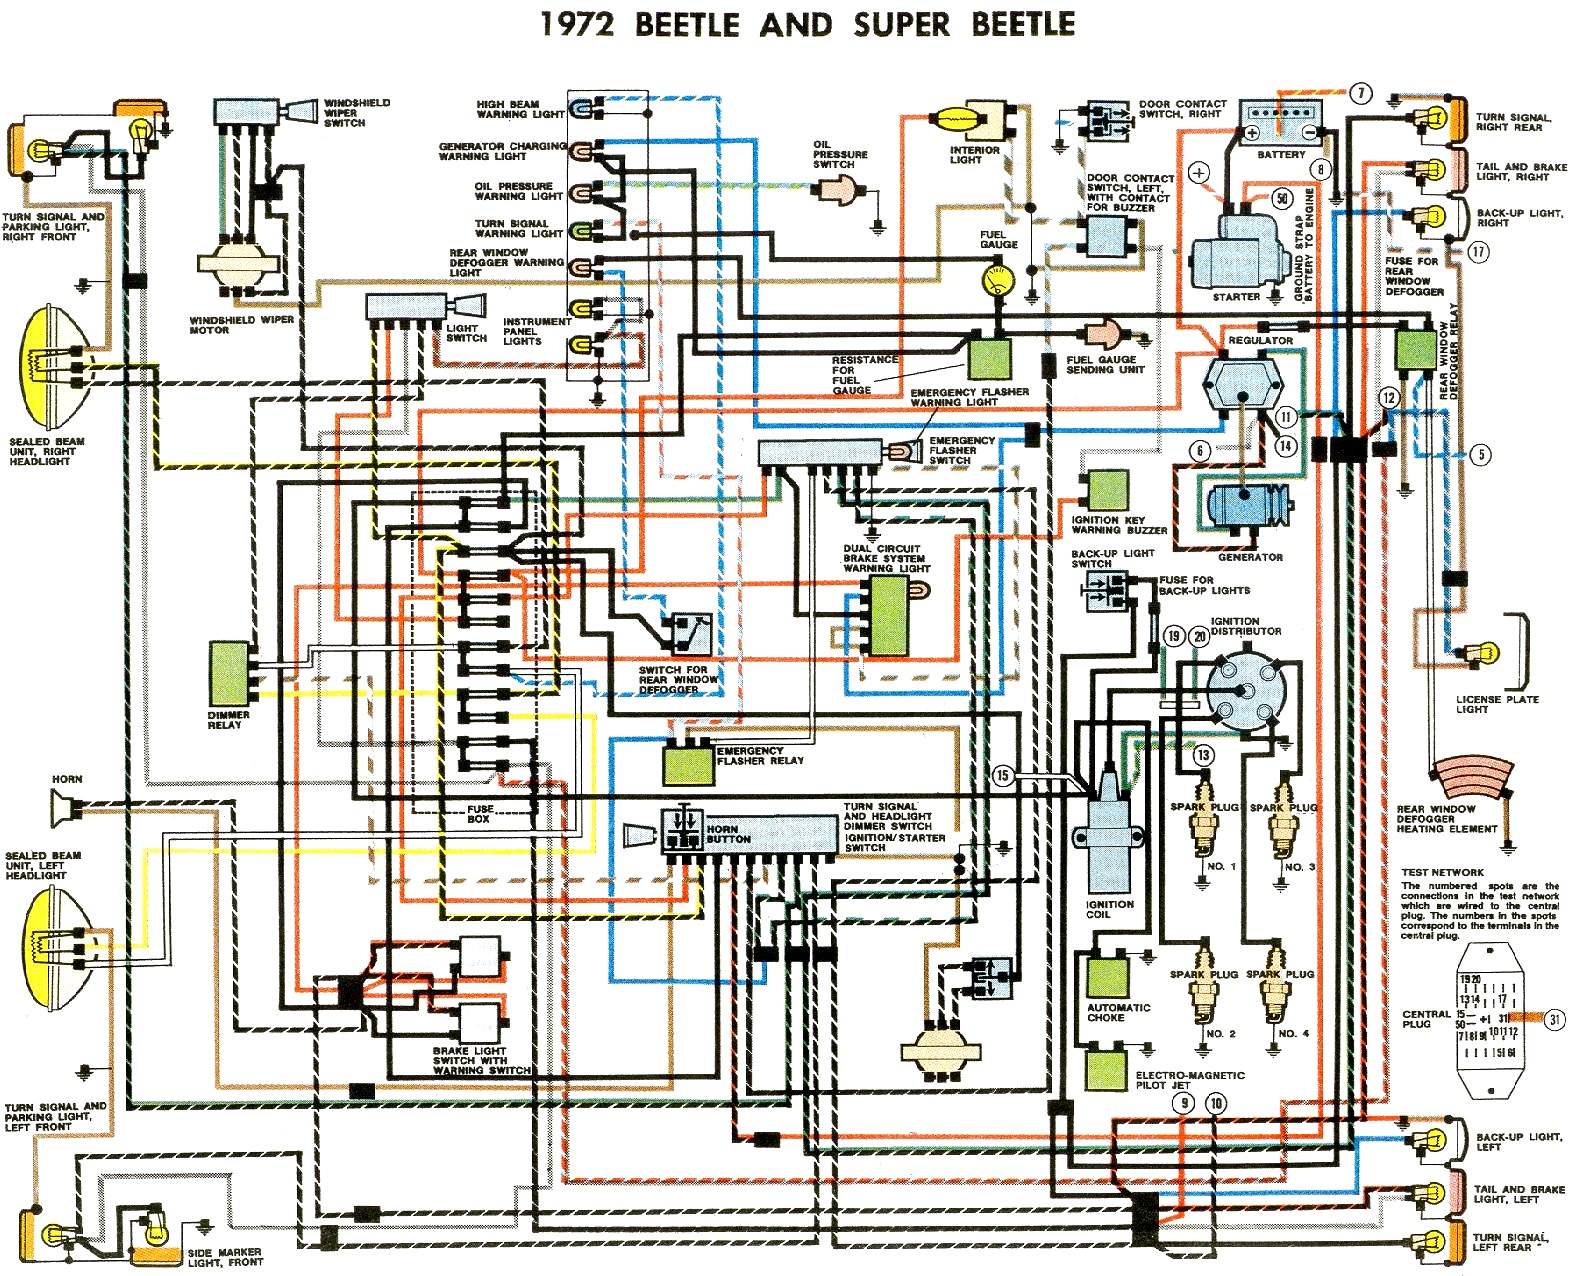 thesamba.com :: general/chat - view topic - how do i get ... 2006 vw beetle wiring diagrams